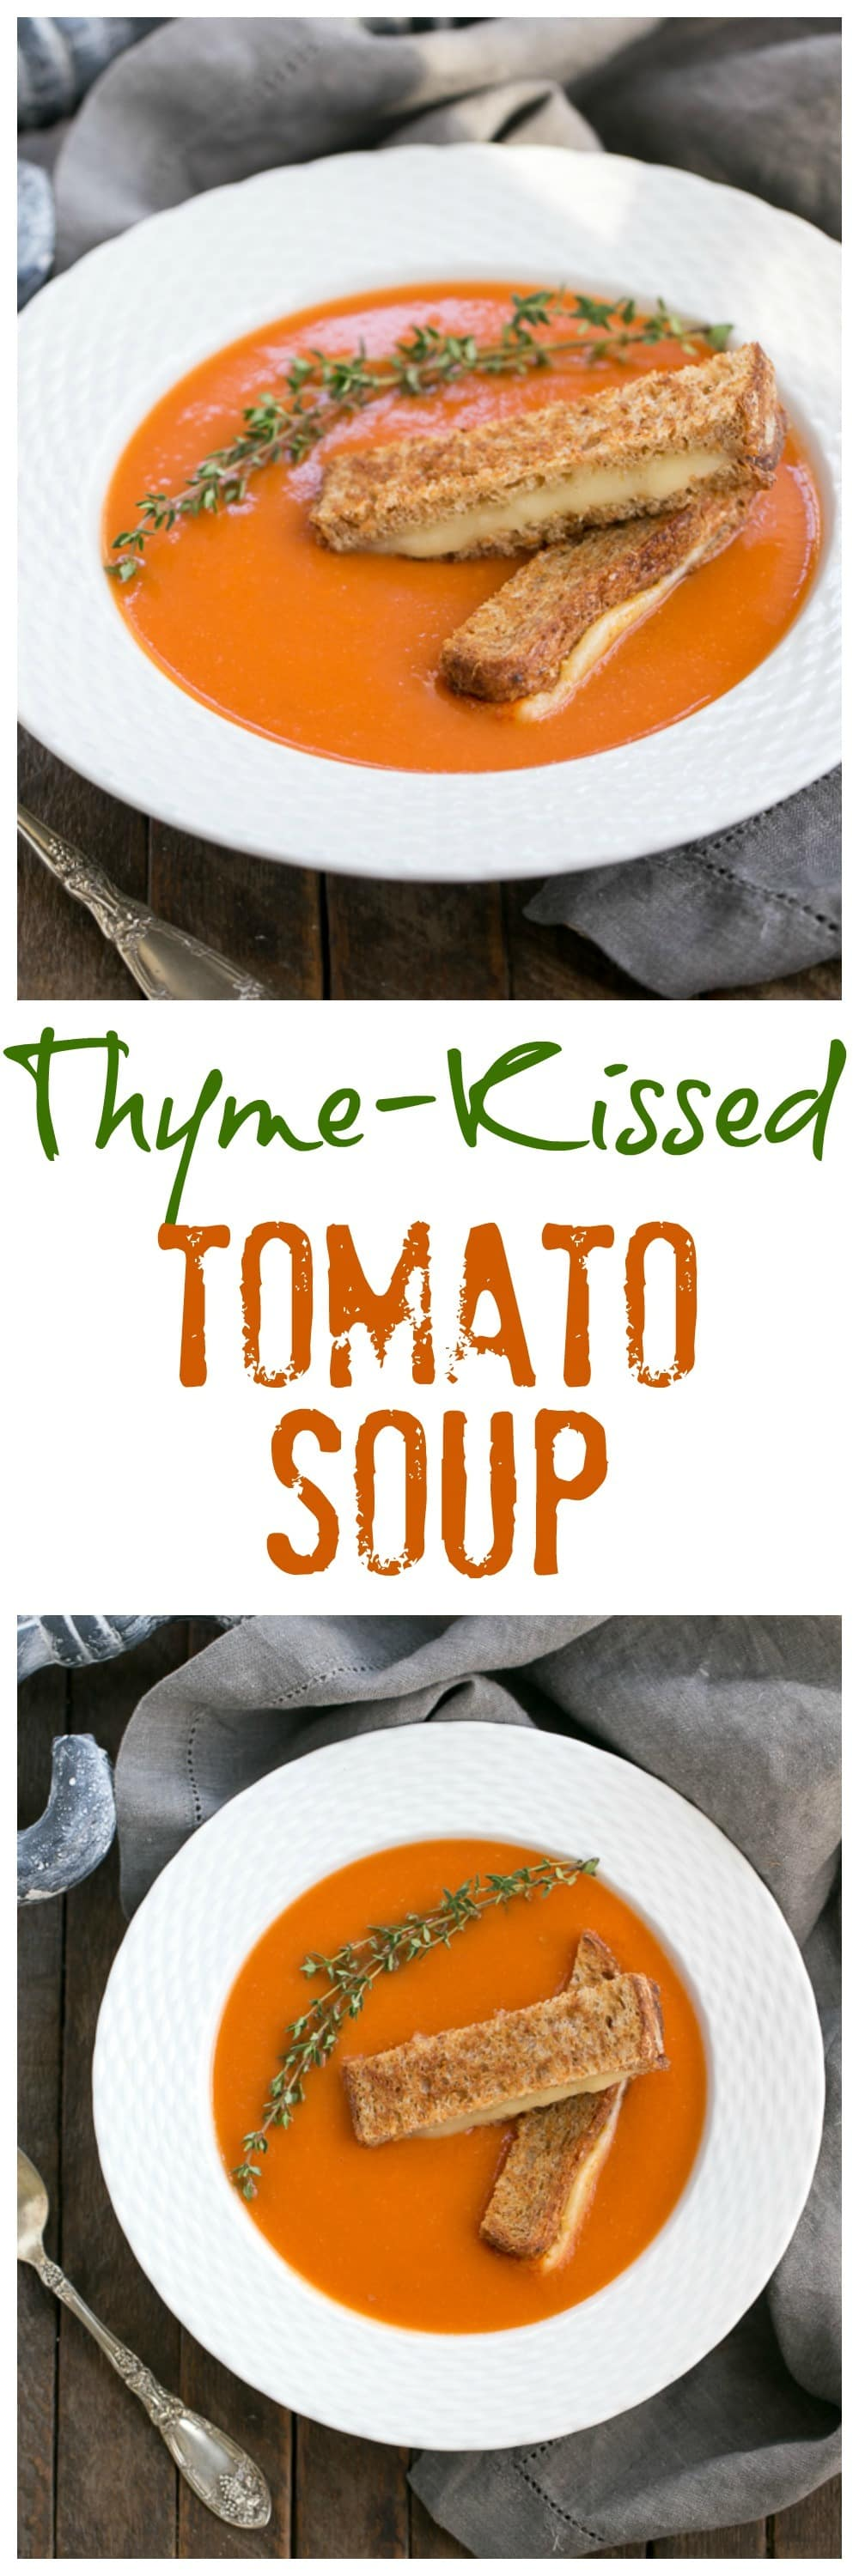 Thyme Kissed Tomato Soup - A luscious classic made without cream and served with grilled cheese fingers! #tomatosoup #grilledcheese #soup